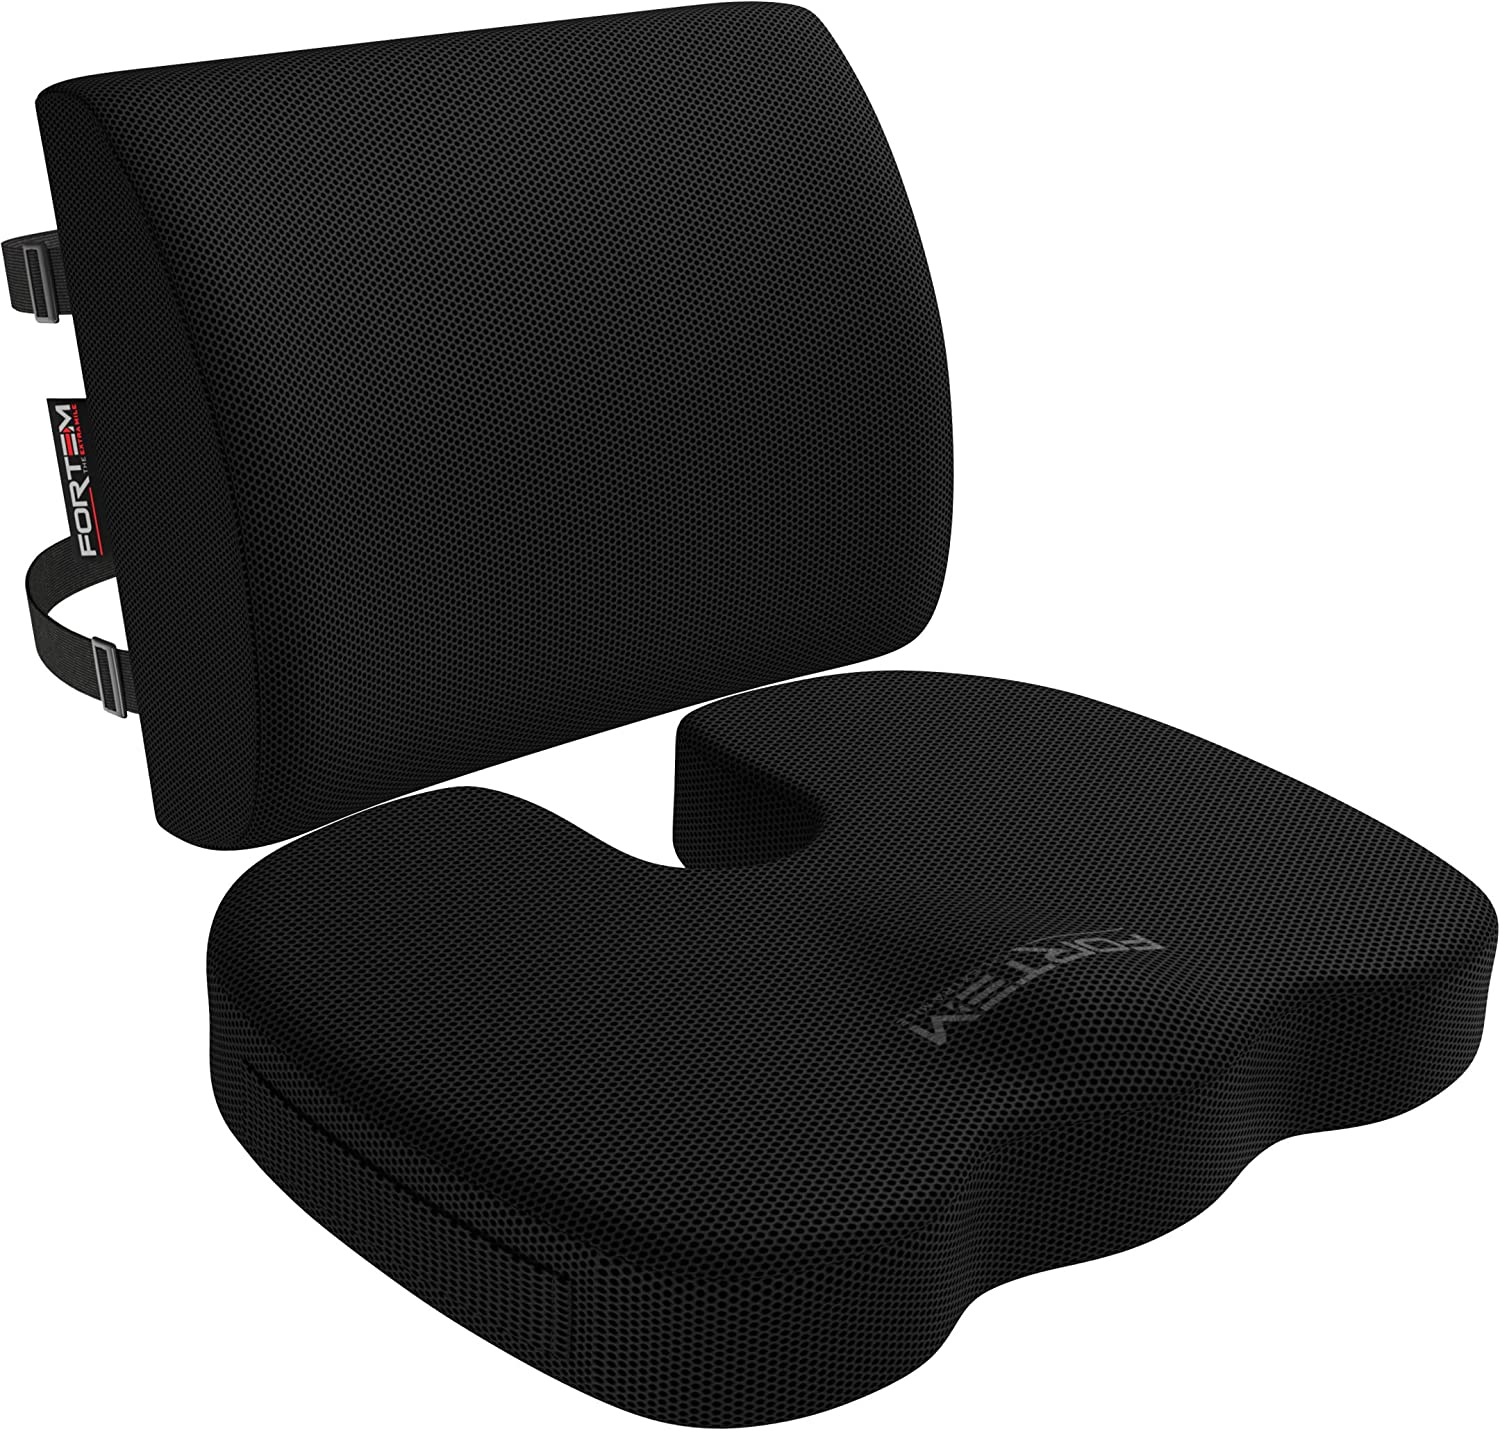 815VnfTom2L. AC SL1500 - What Are The Best Seat Cushion For Buttock Pain That Help You Sit Comfortably - ChairPicks